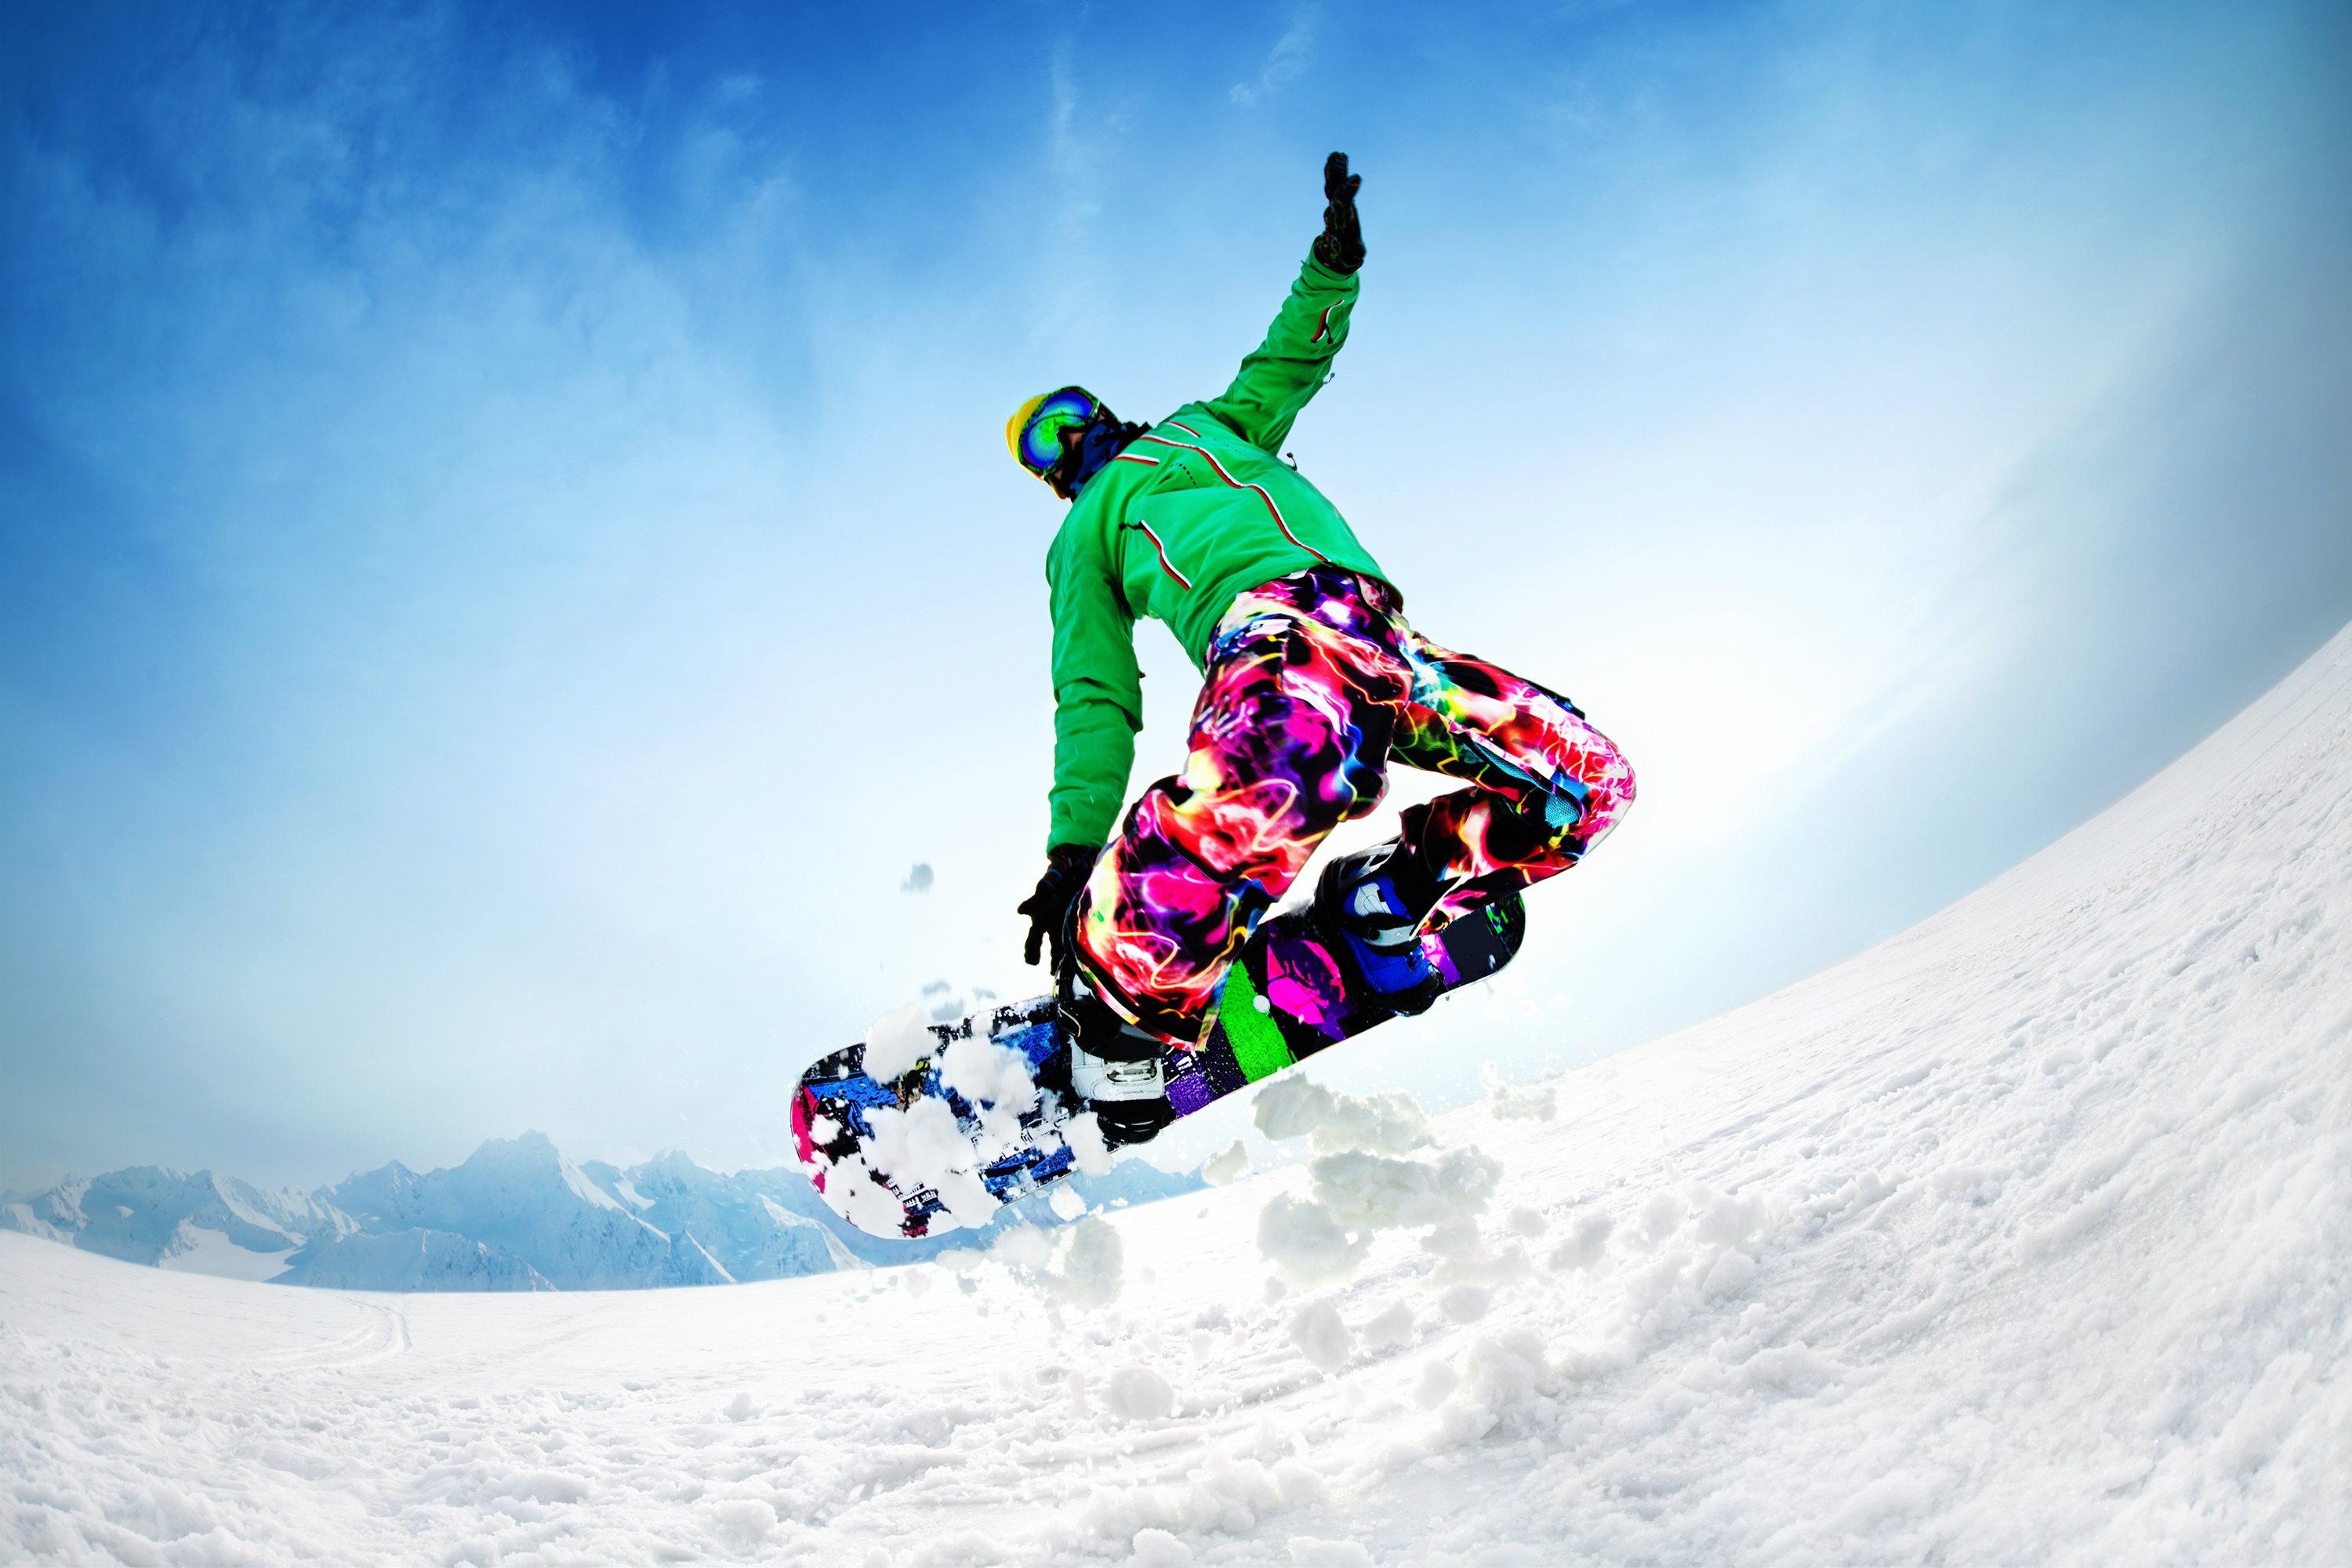 Big snowboarder jumping from the mountain along the road extreme